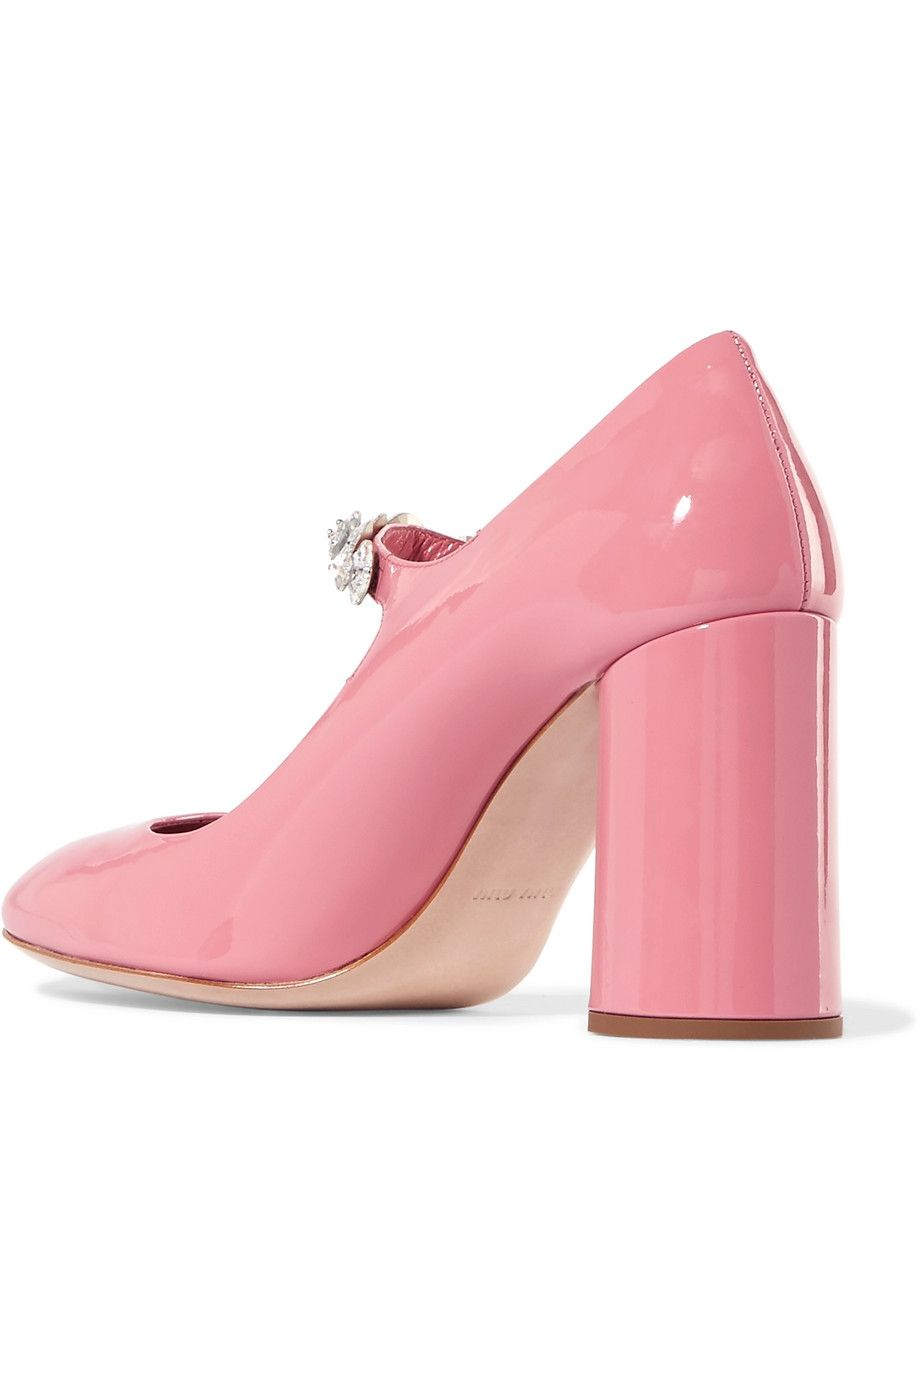 crystal embellished pumps - Pink & Purple Miu Miu